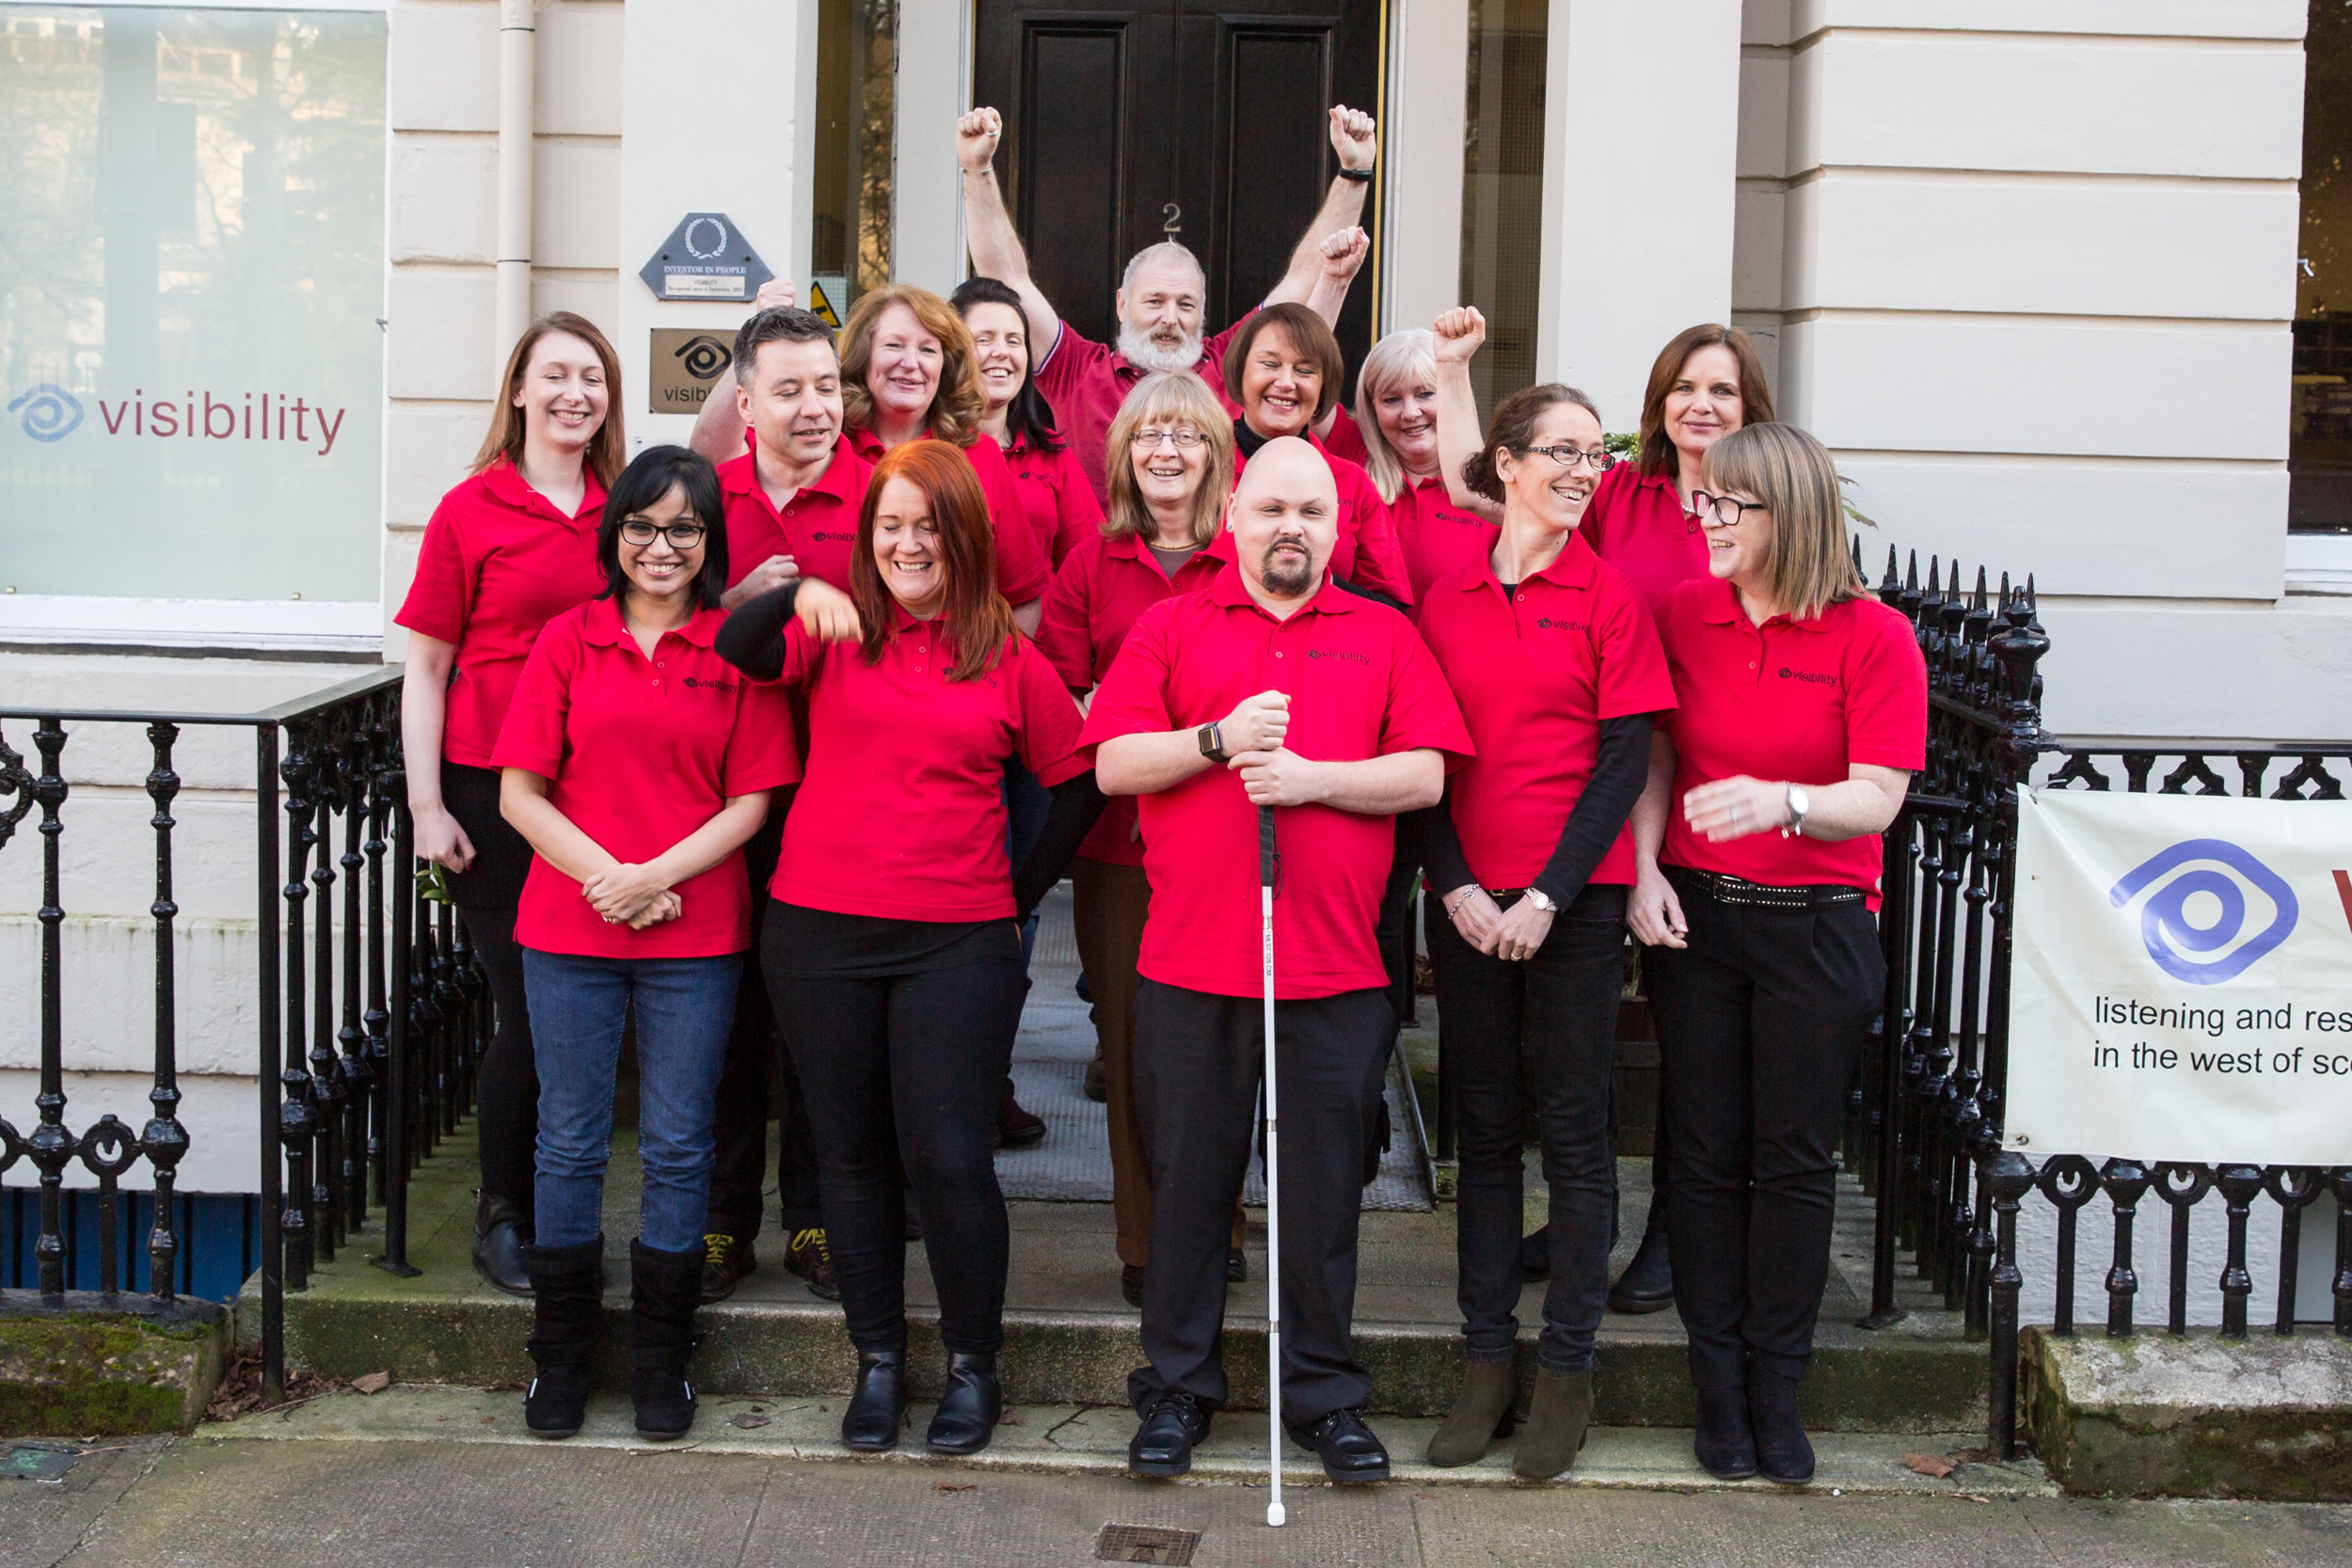 a group picture of staff at Visibility, all wearing red polo shirts, standing outside the entrance to the Glasgow office